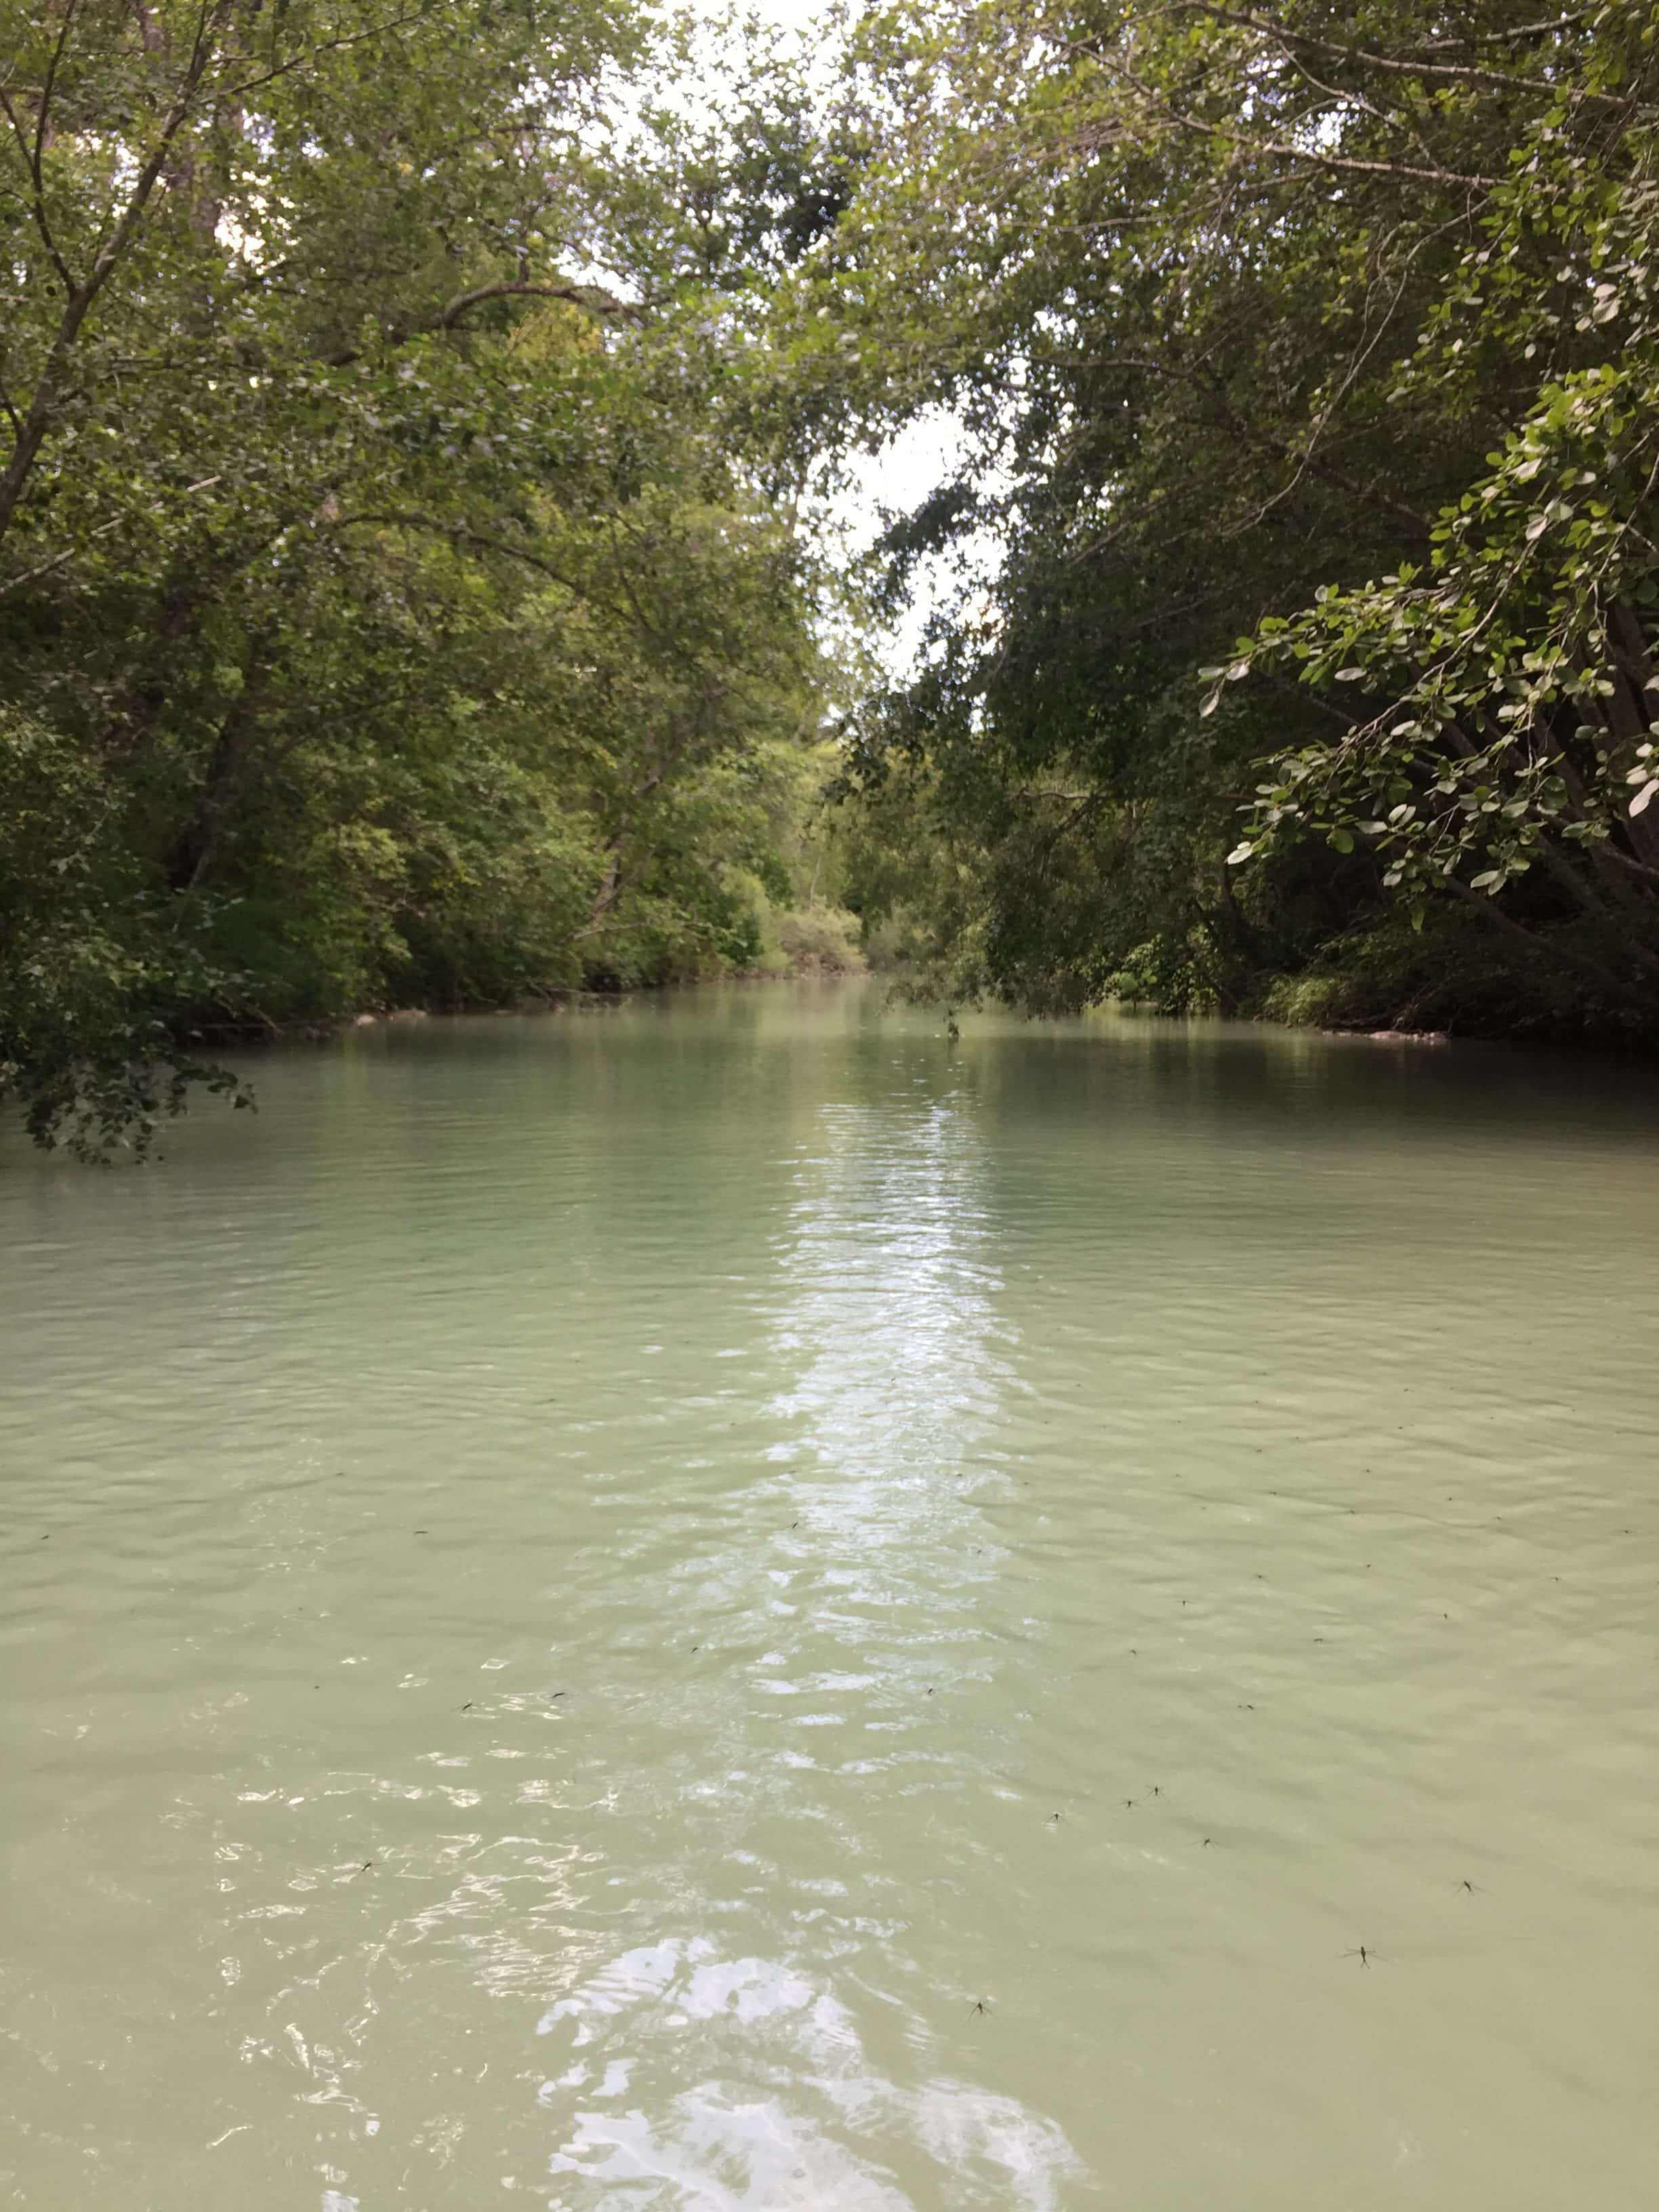 Where we dunked in the river